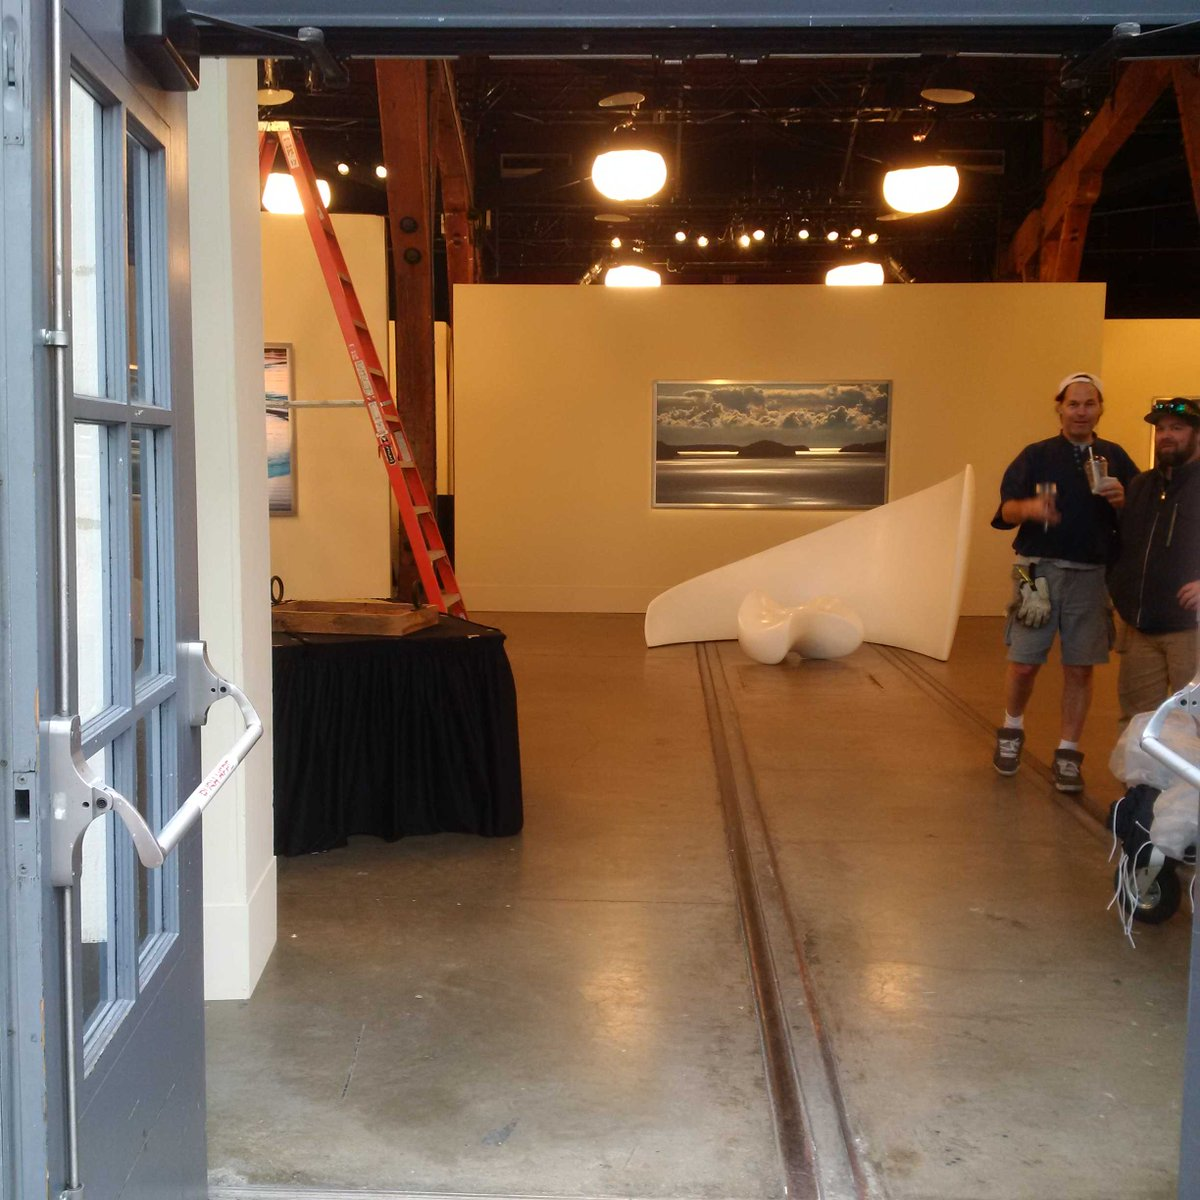 Here's a better look at 'Jose's gallery' opening. The set-dec guys were not pleased. #fiftyshades update https://t.co/CKzN6jfhcf